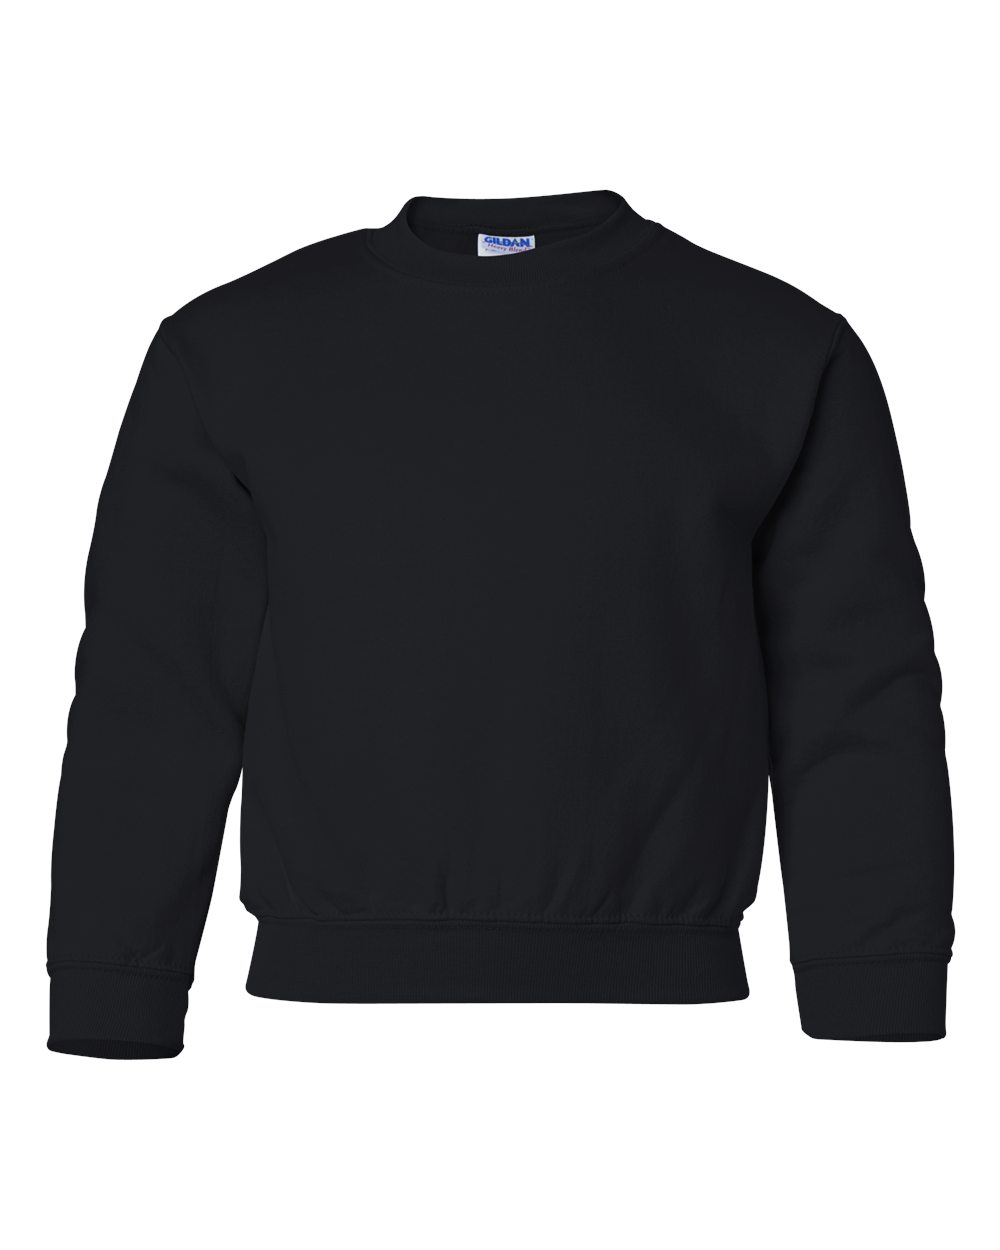 Picture of Gildan Youth Crewneck Sweatshirt